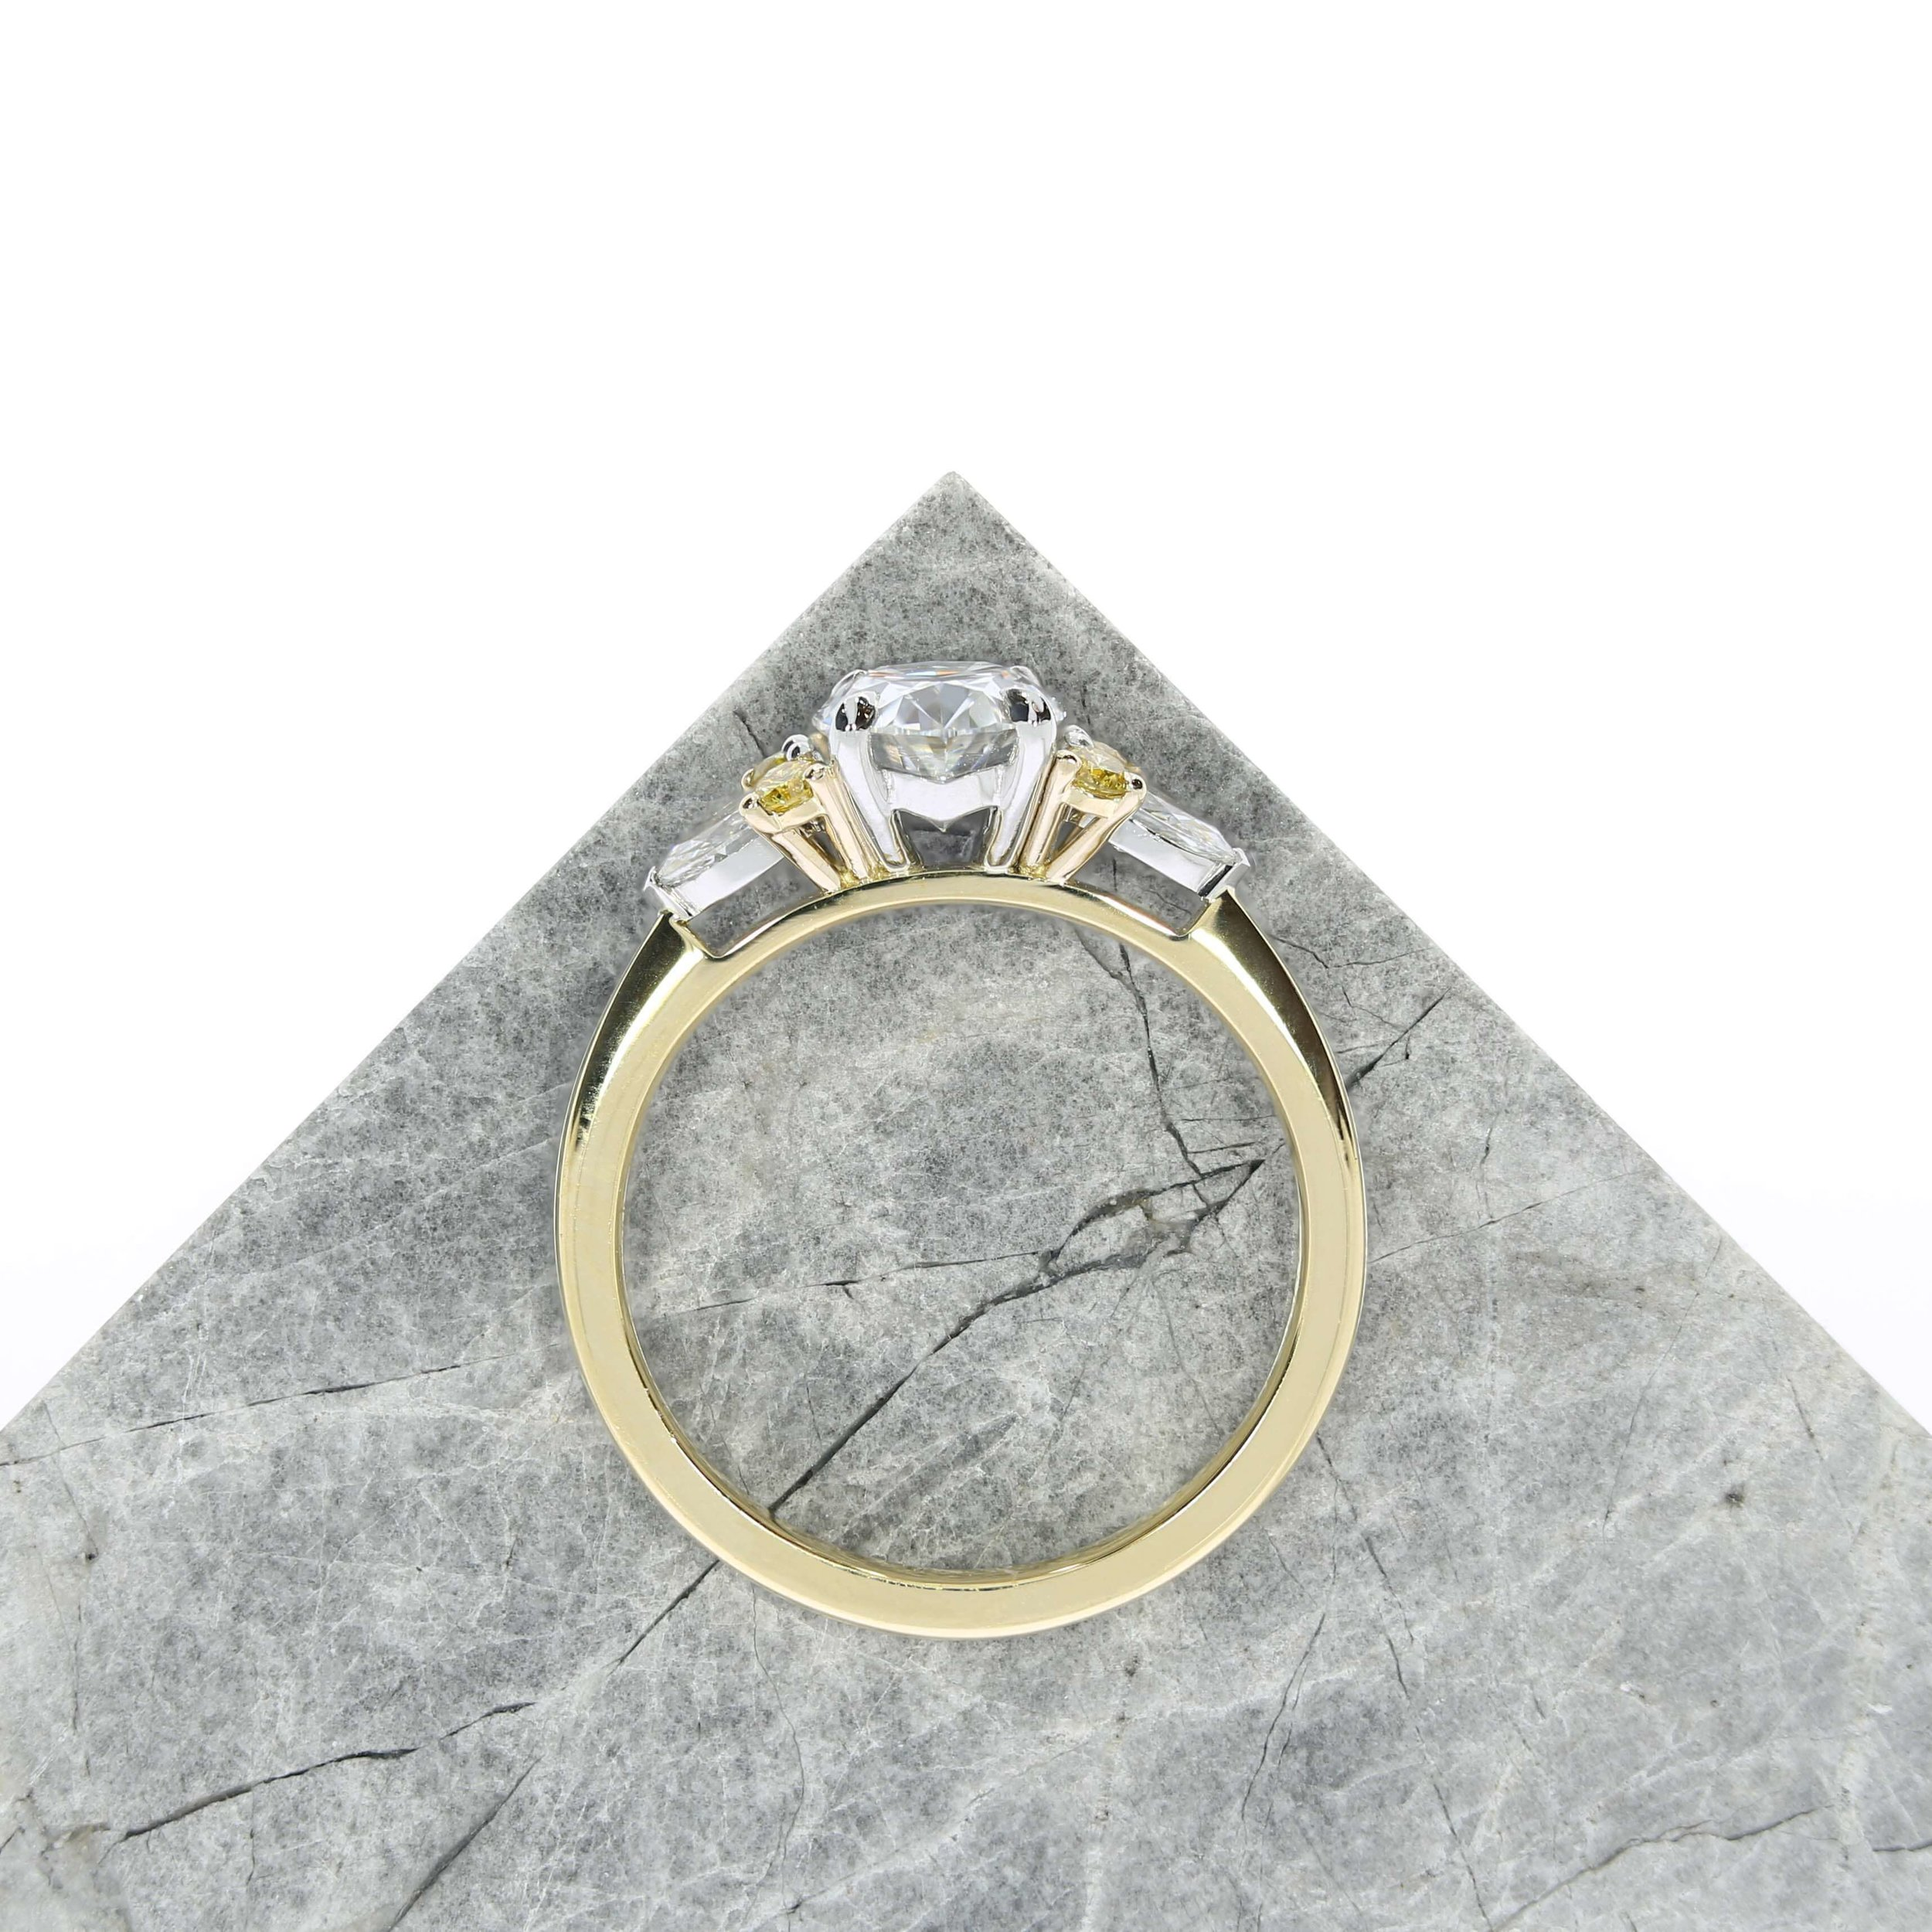 If you know your partner has a favourite colour, why not add some stones to match it? This creative design features white and yellow diamonds